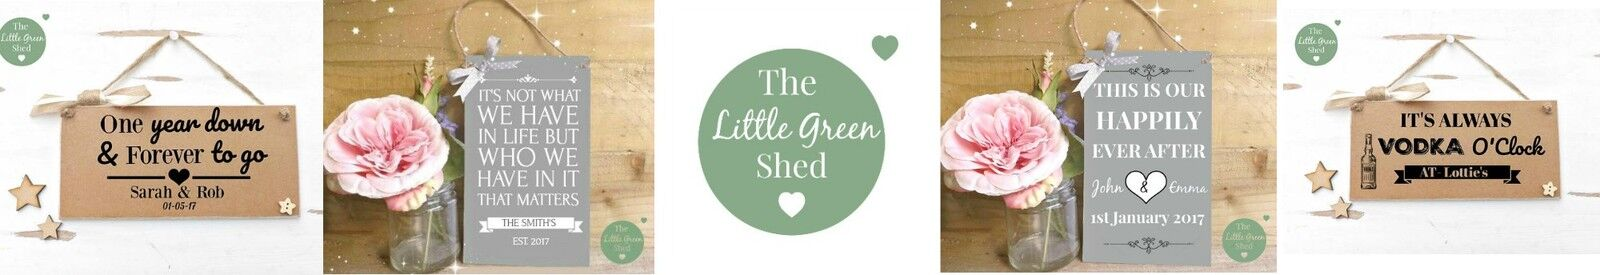 The little Green Shed